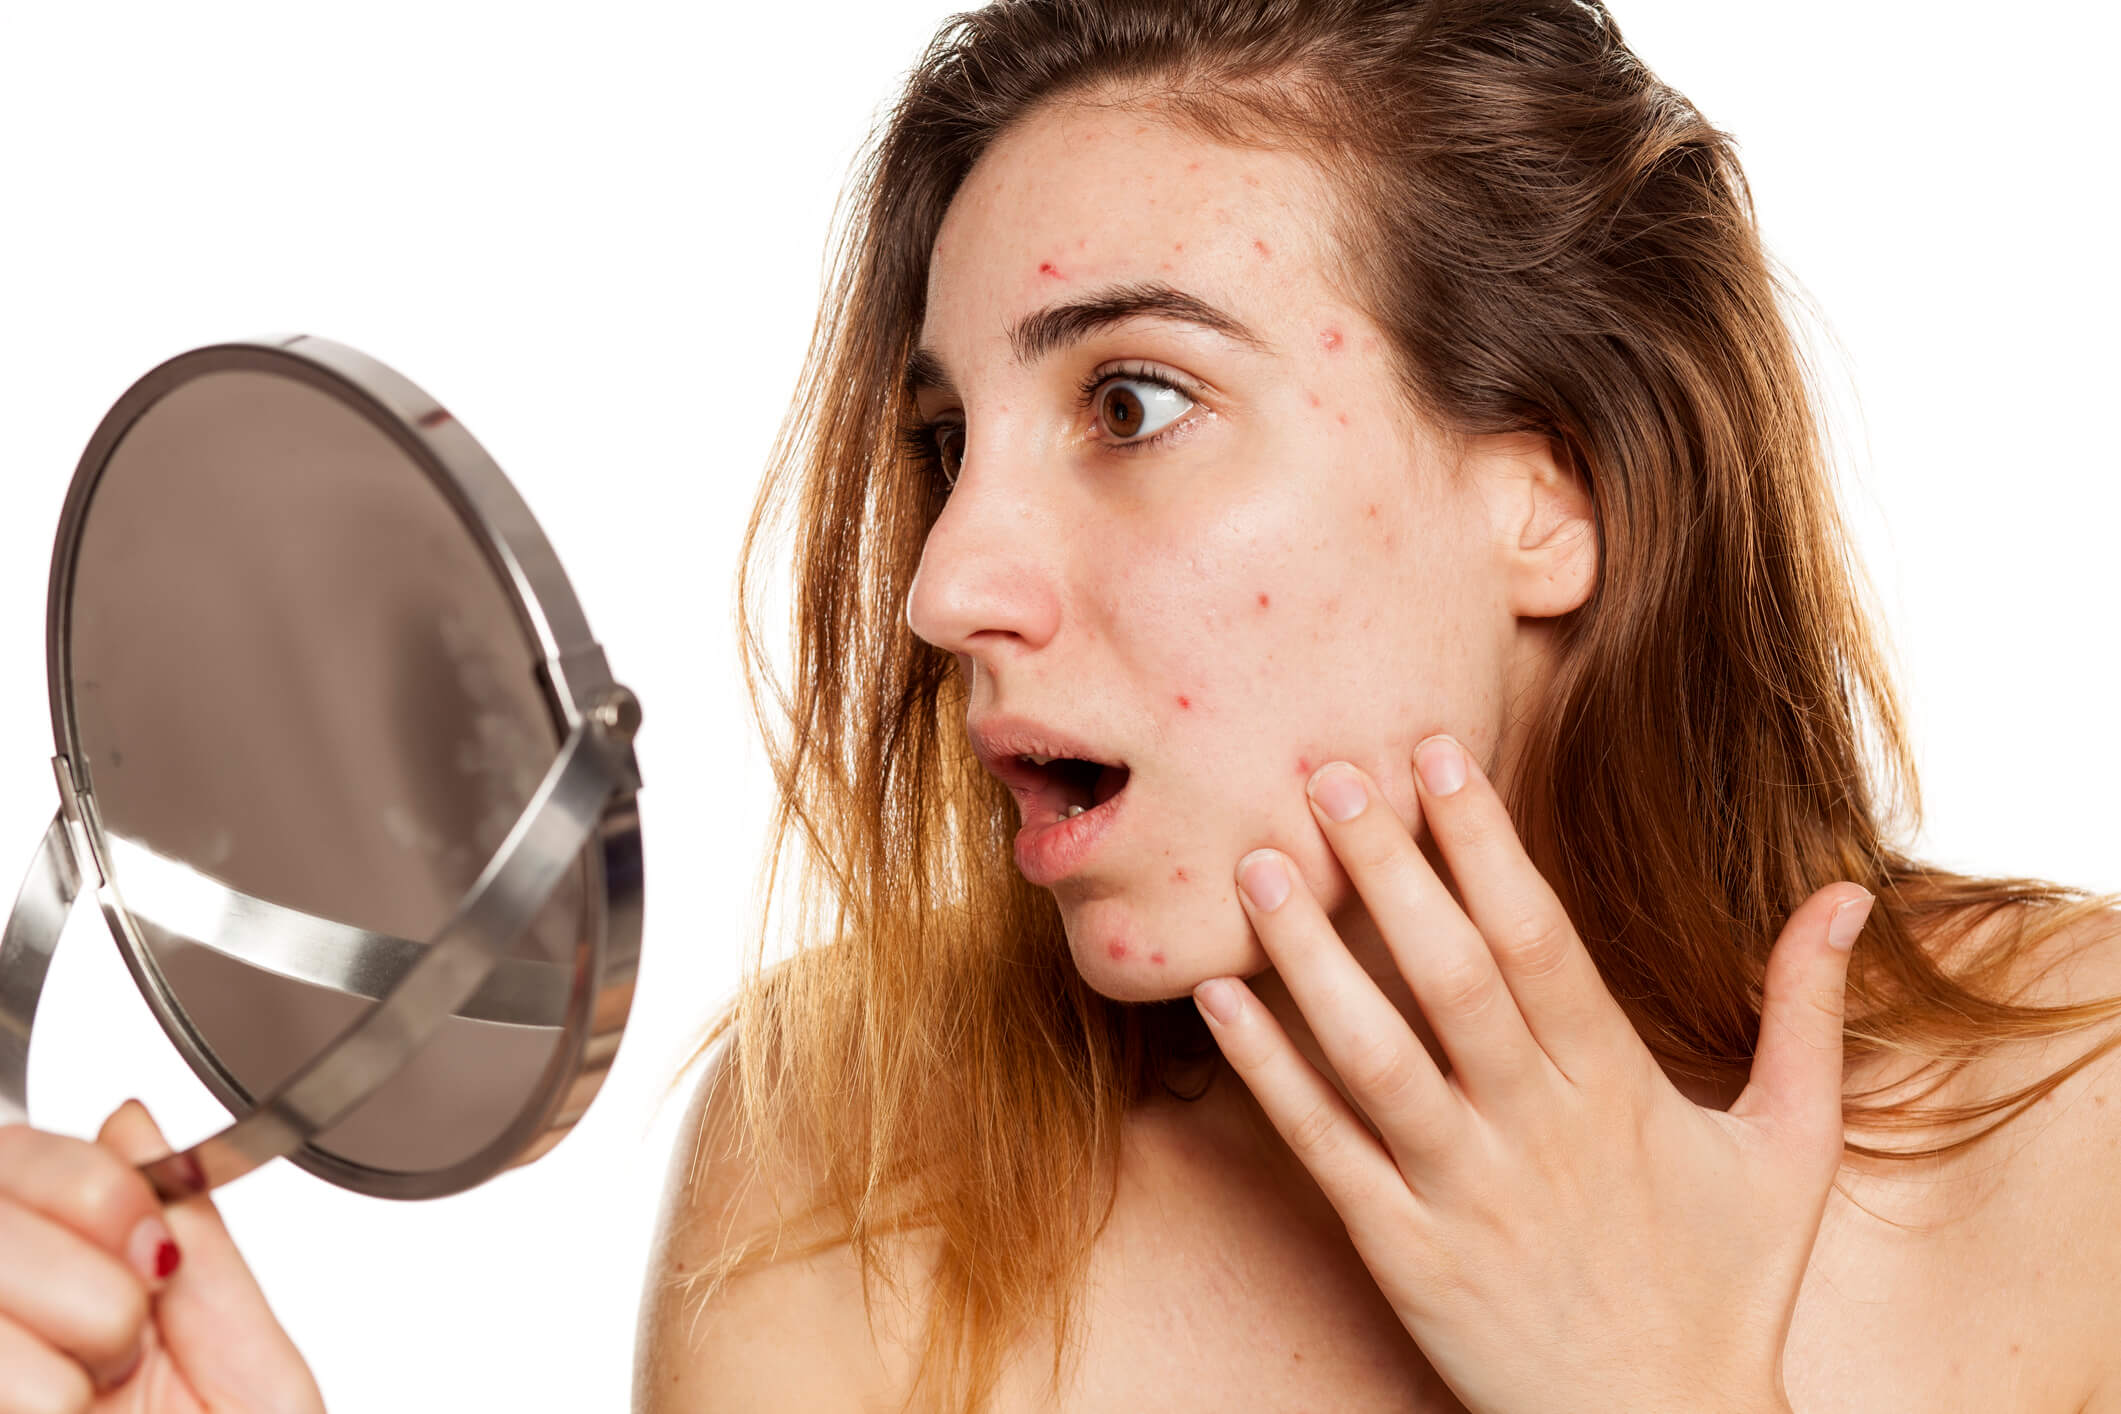 Woman Looking at Mild Acne in Mirror